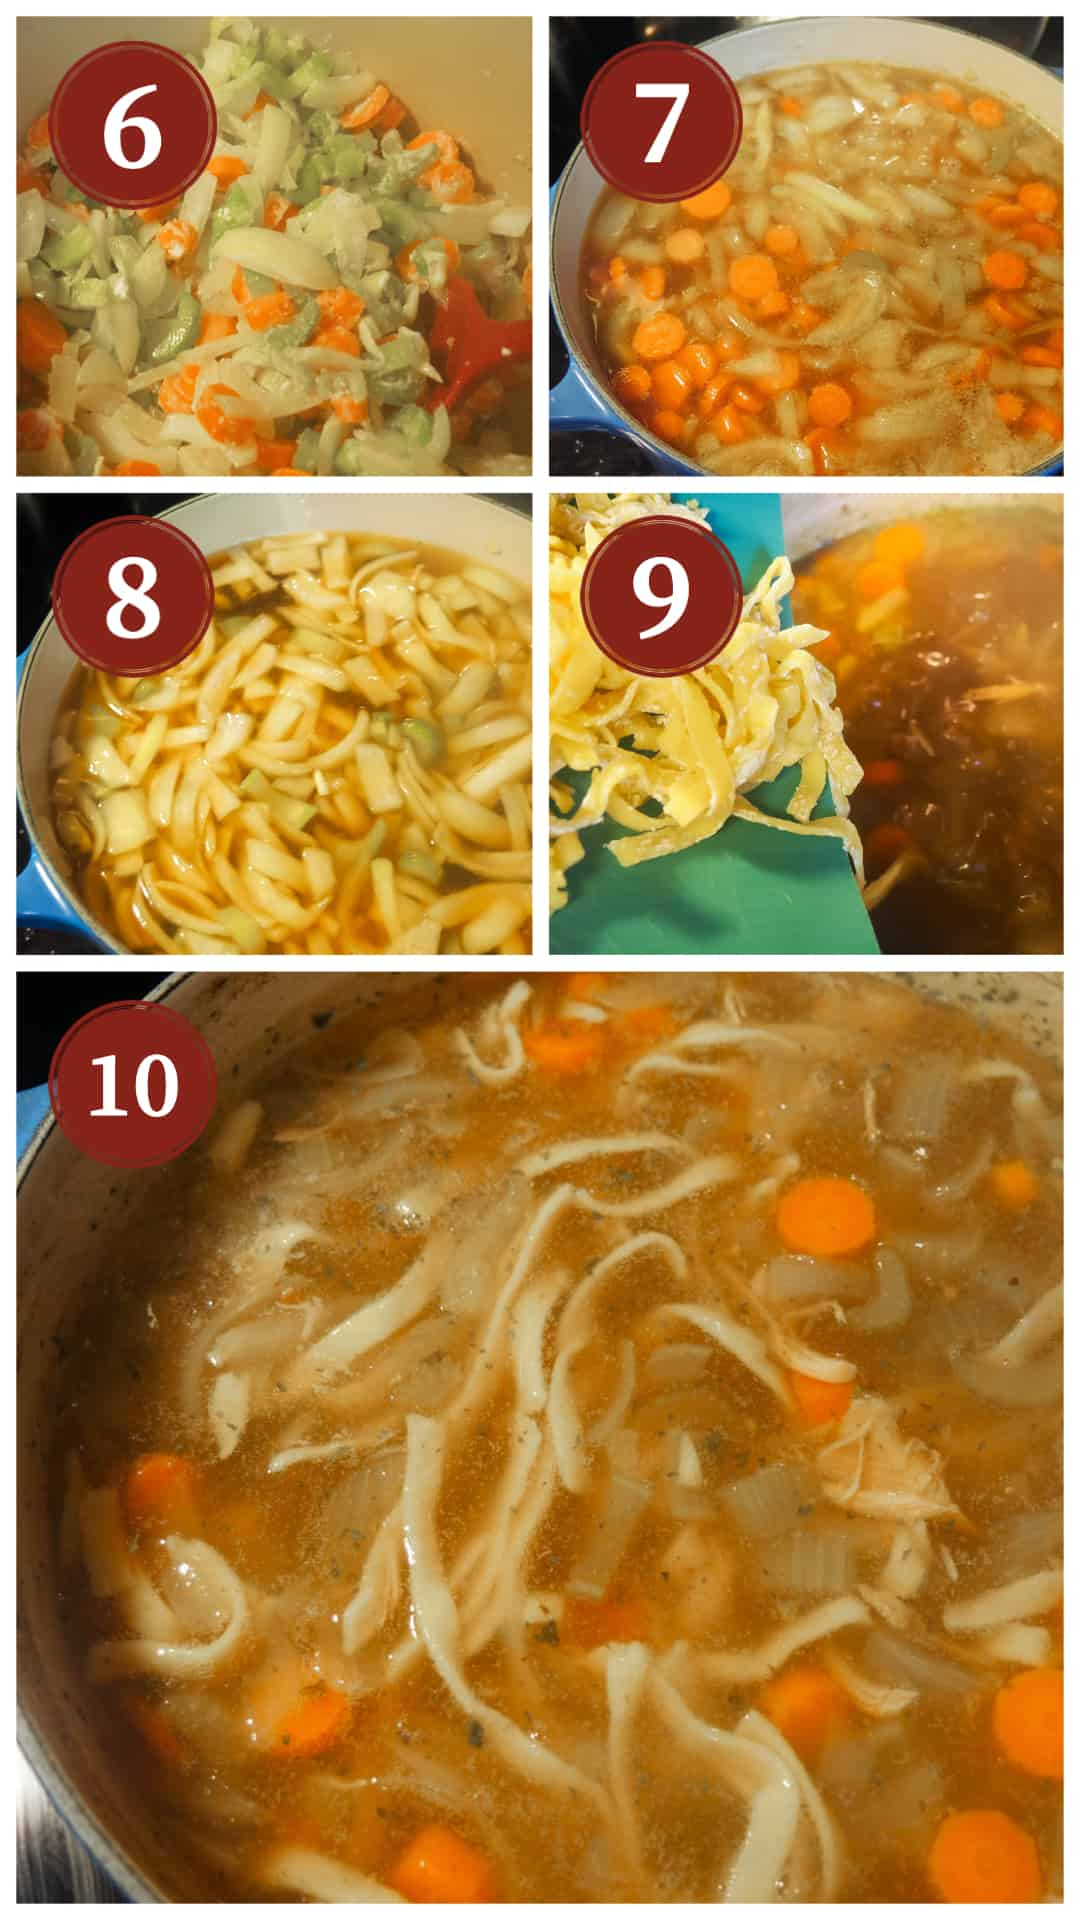 A collage of images showing the process of cooking paleo chicken noodle soup, steps 6 - 10.